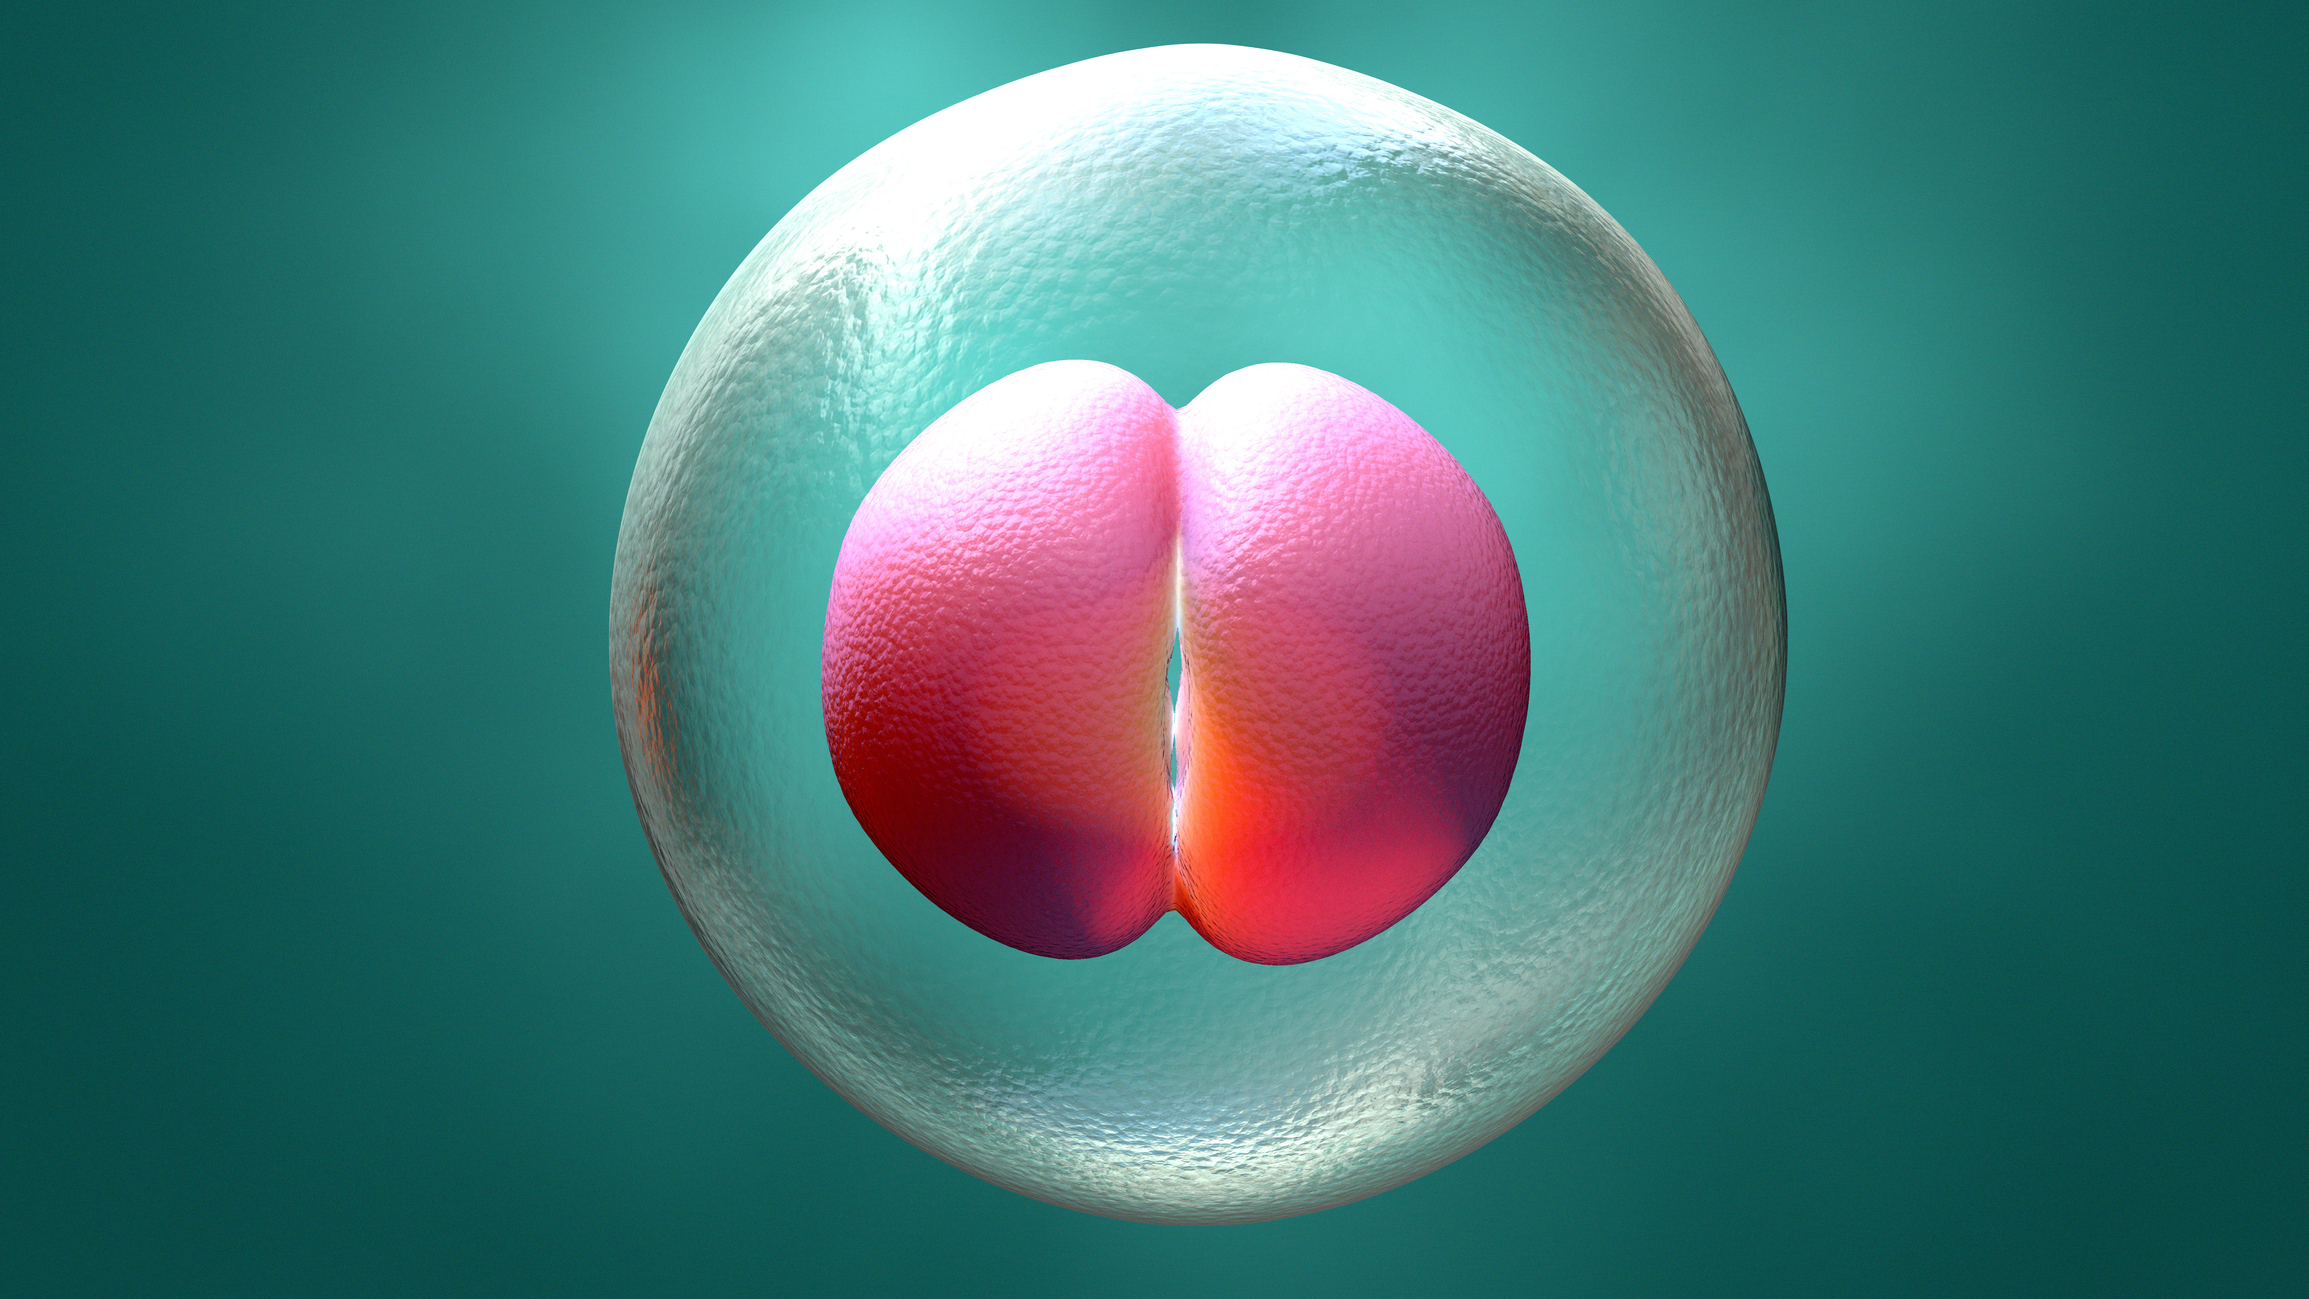 3d illustration embryo early stage